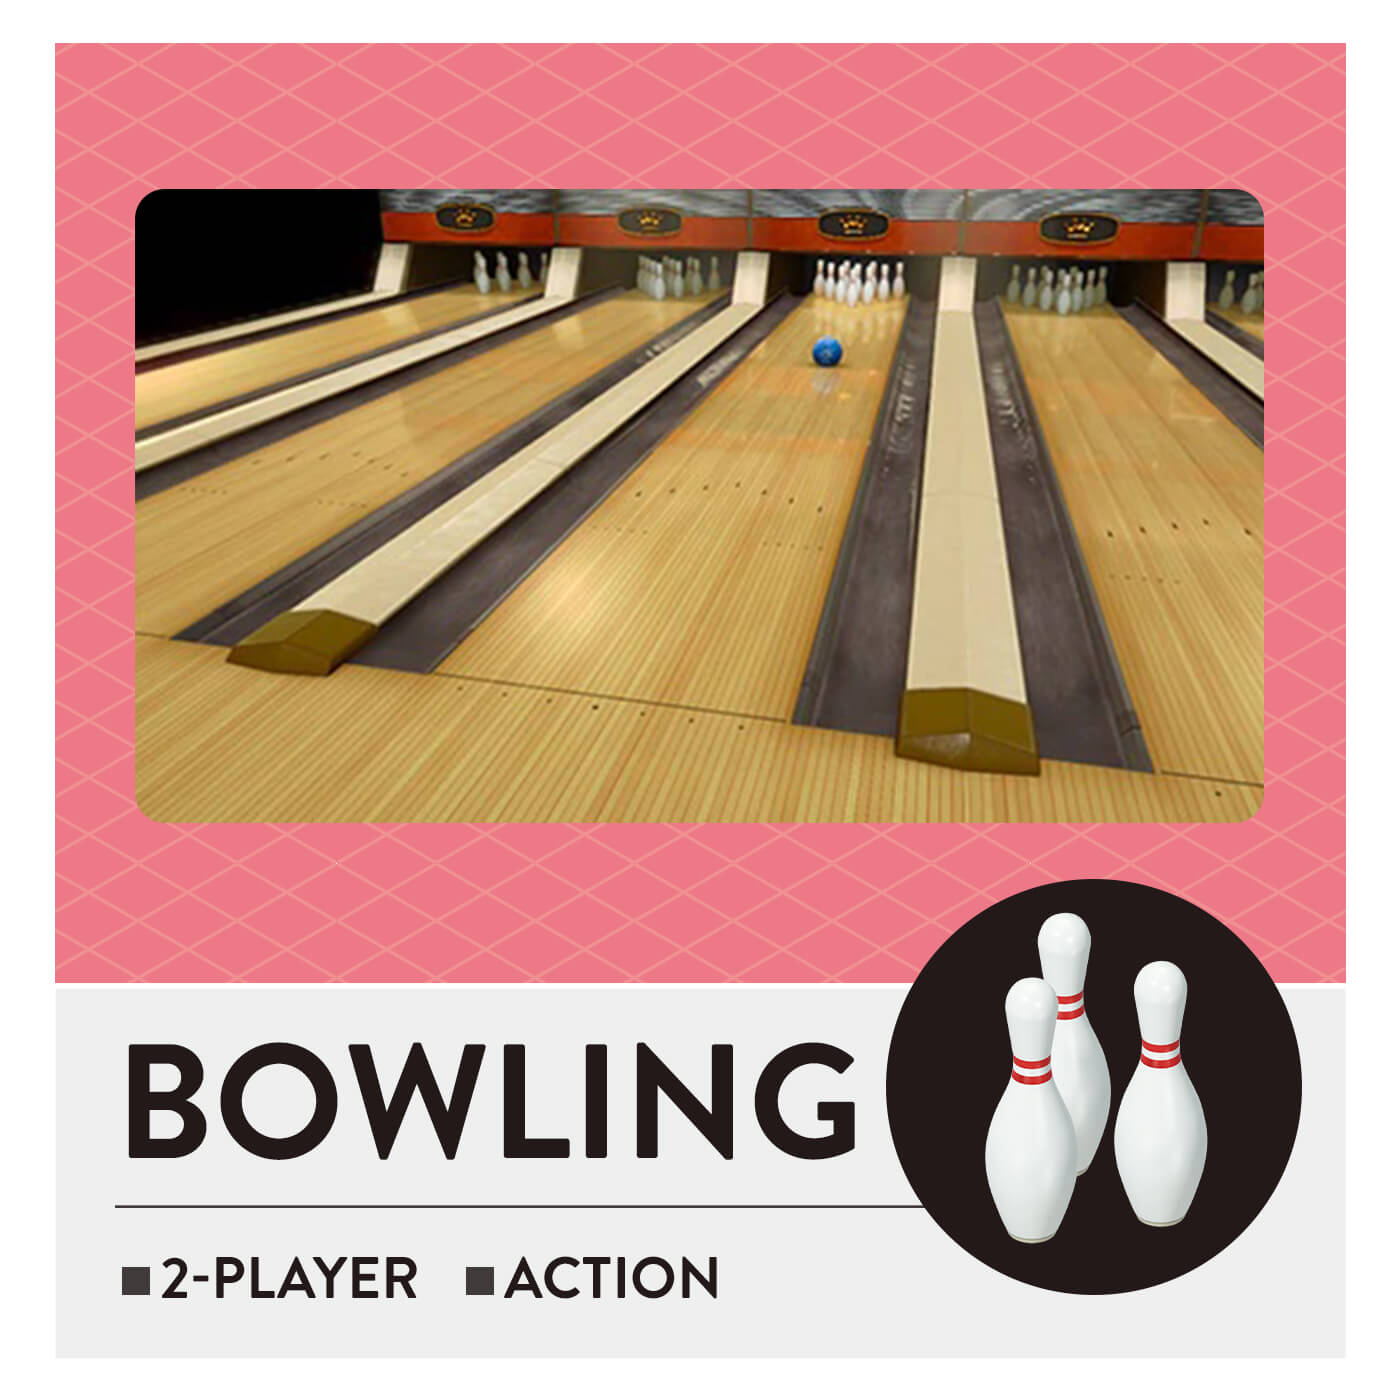 51 Worldwide Games - Bowling